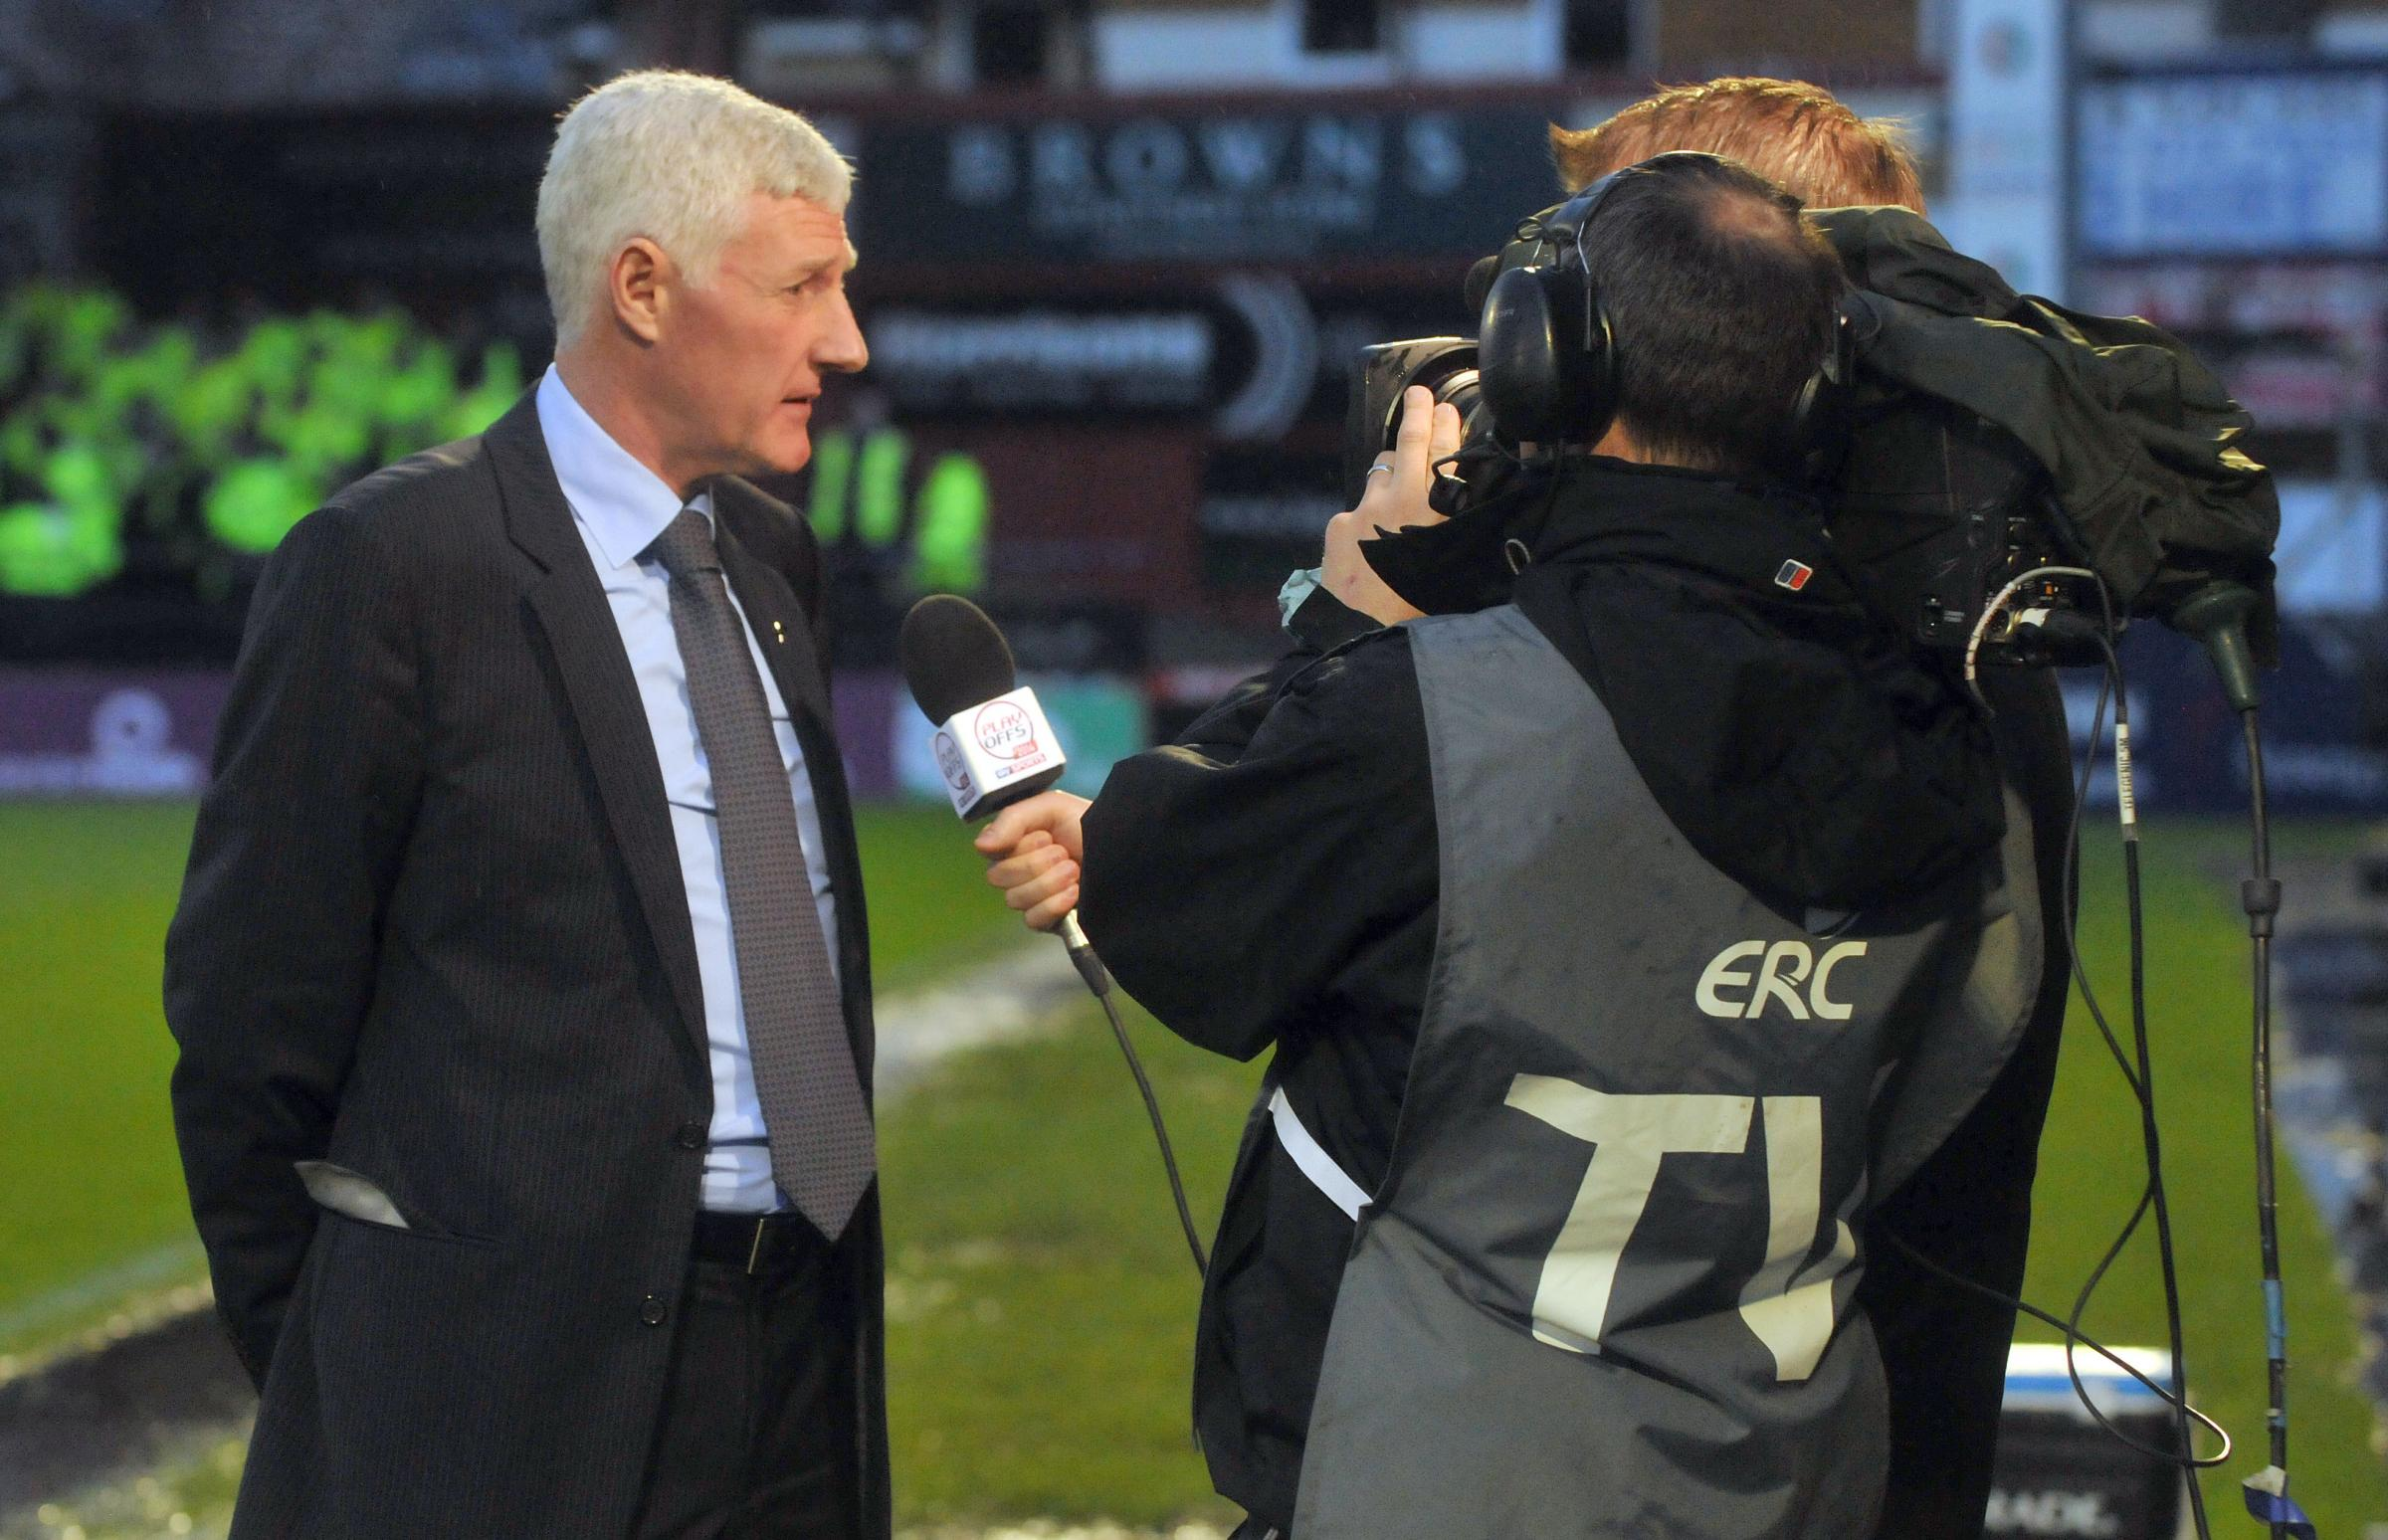 York City boss Nigel Worthington gives his thoughts on the play-off postponement on Sky Sports